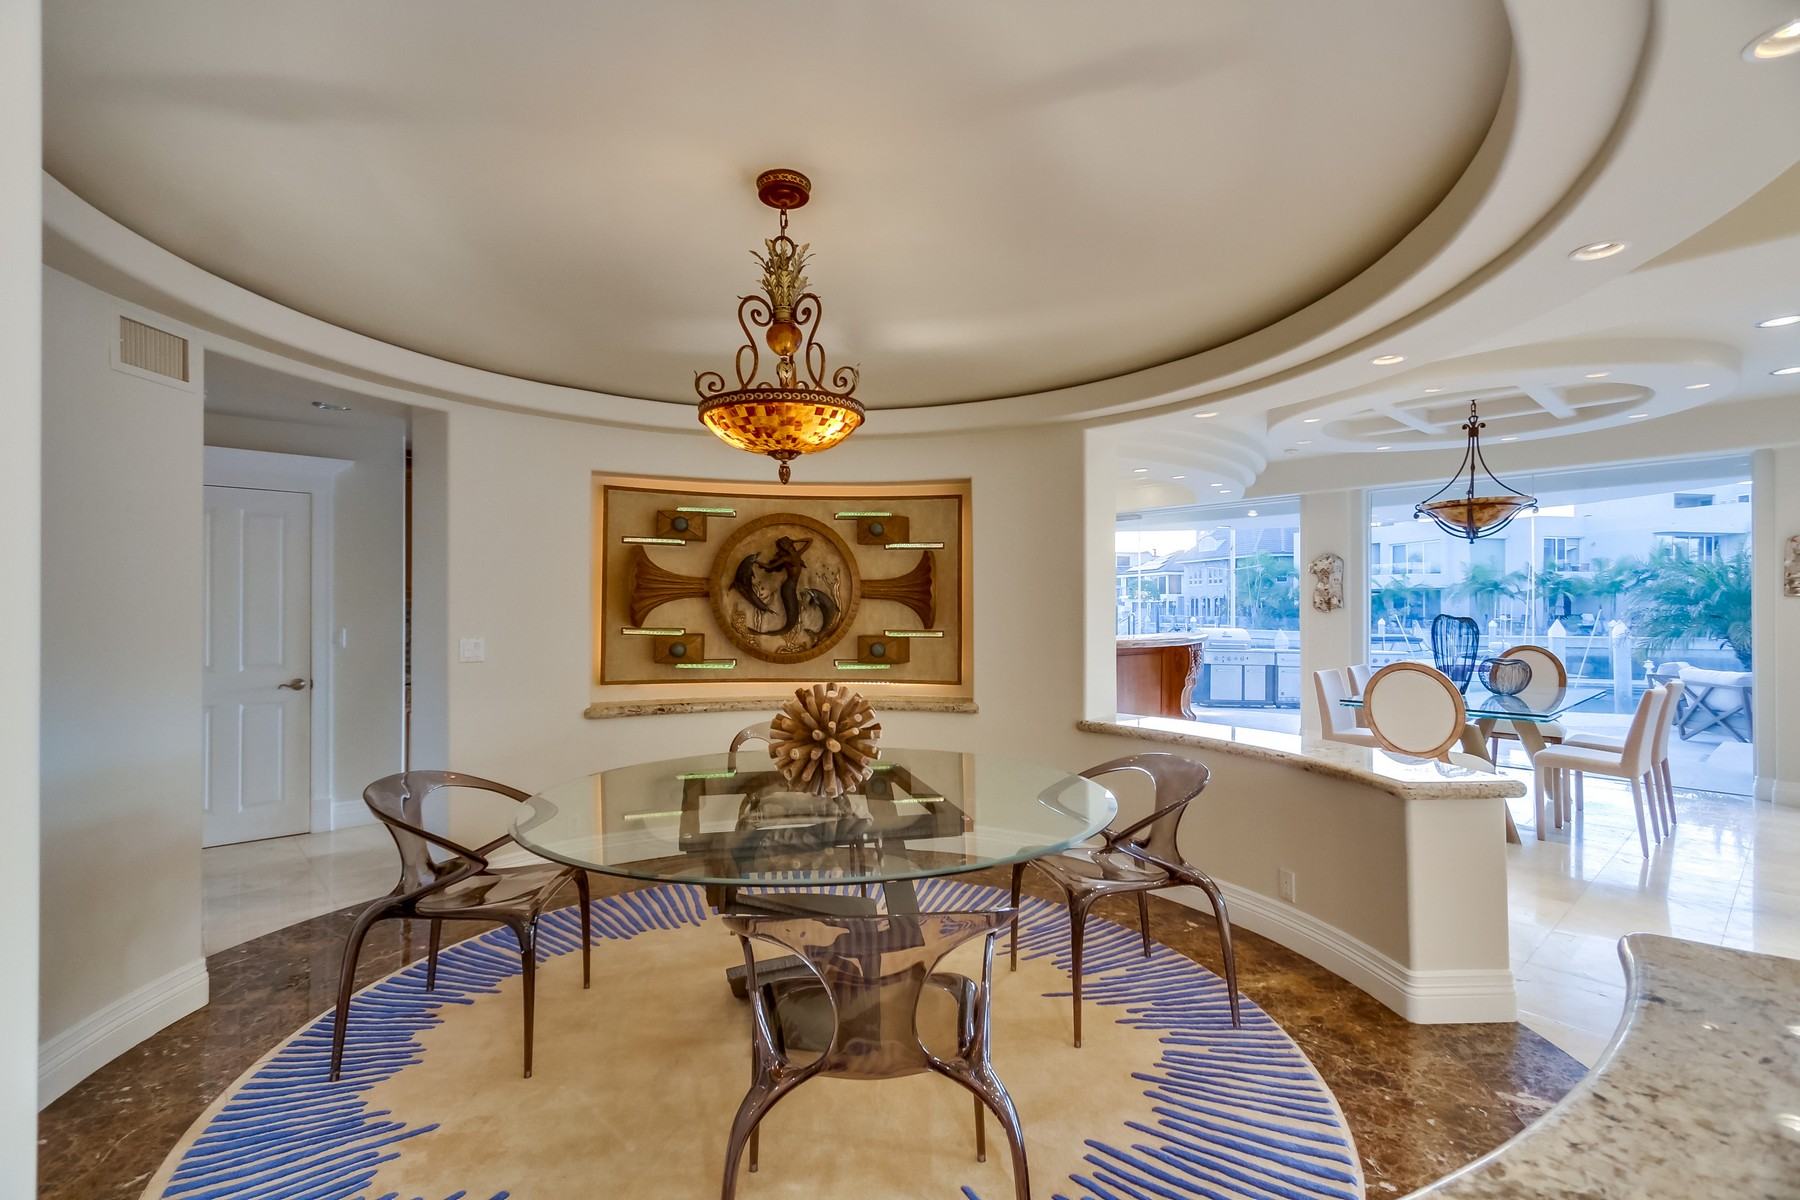 Additional photo for property listing at 14 Spinnaker Way  Coronado, California 92118 Estados Unidos